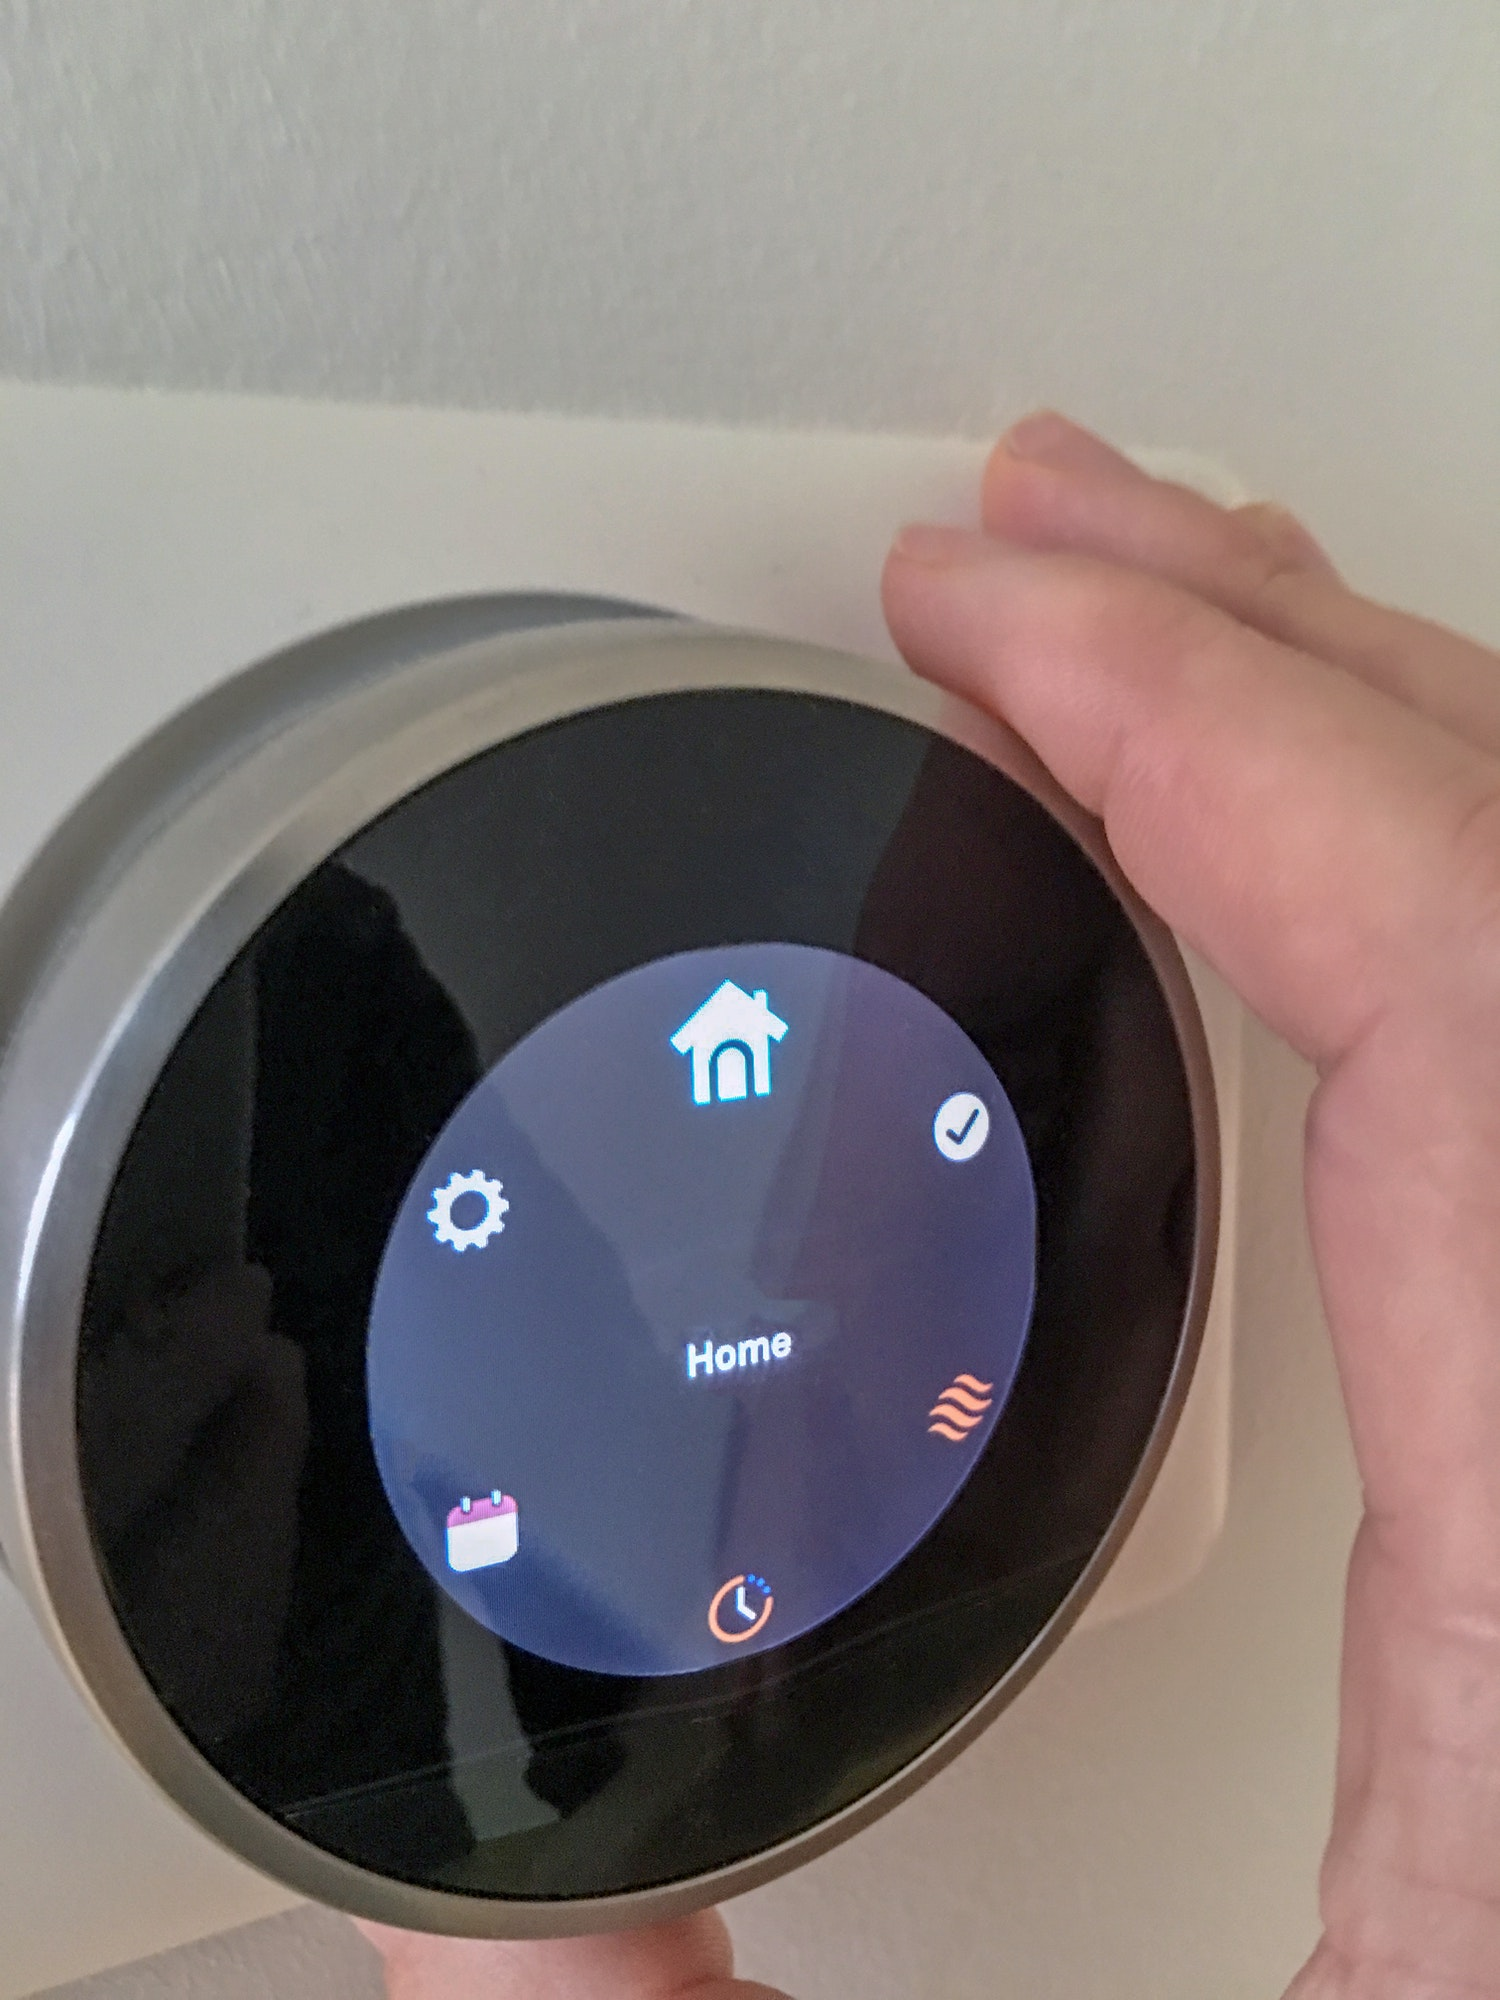 Smart home thermostat technology with hand